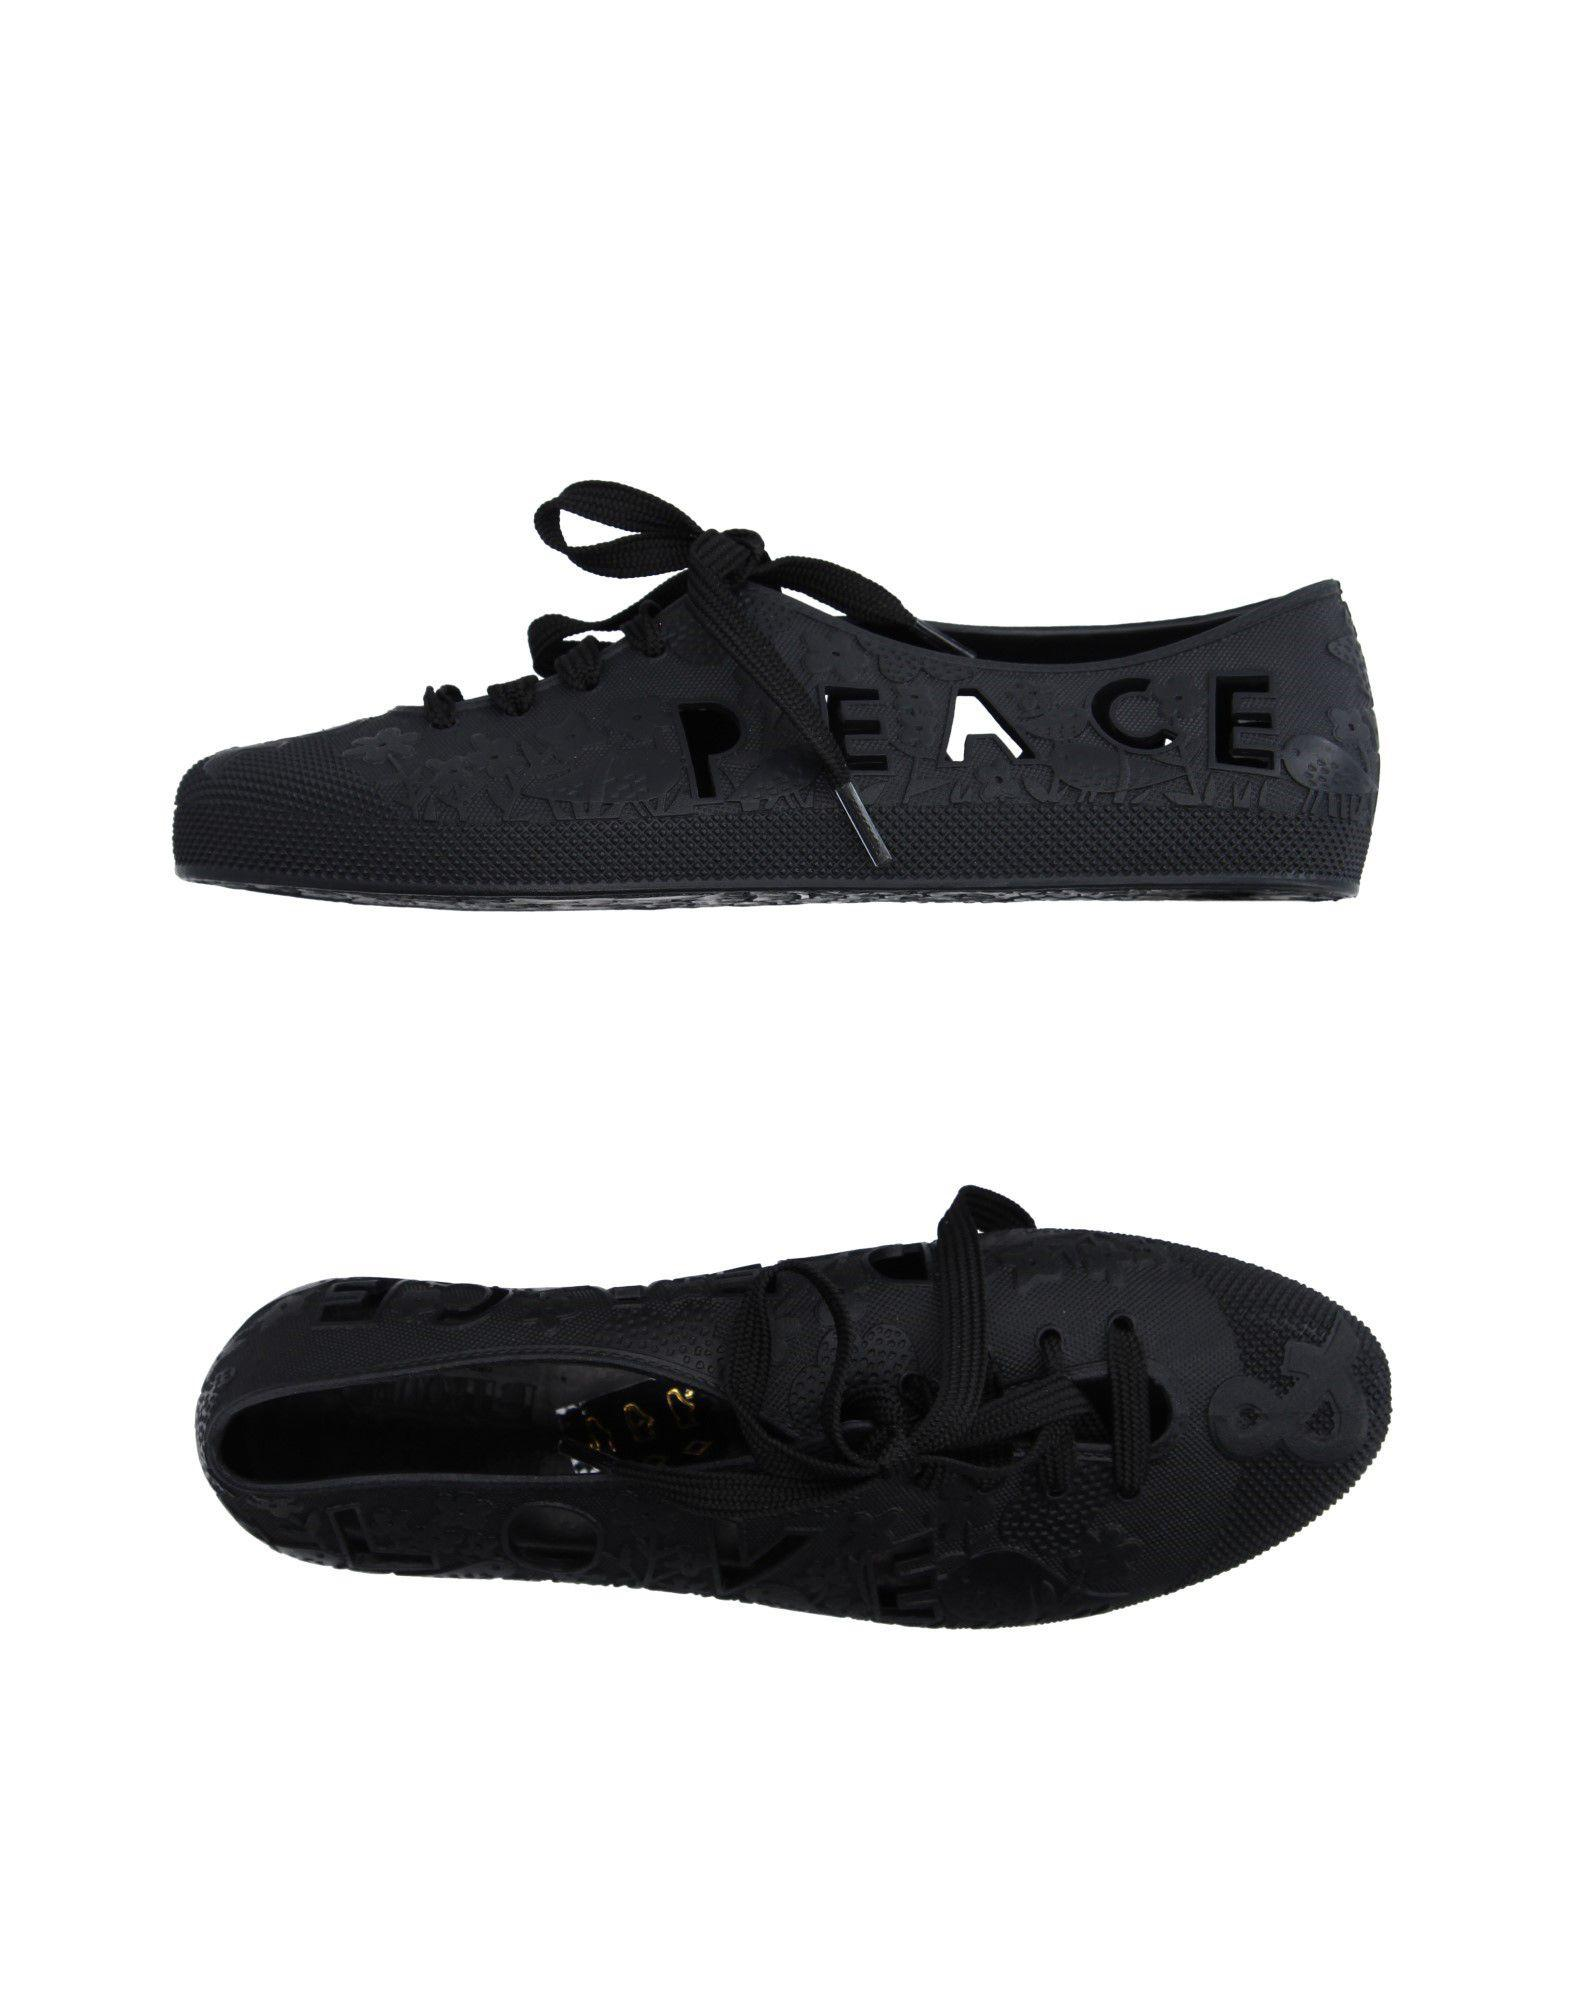 FOOTWEAR - Lace-up shoes on YOOX.COM Katy